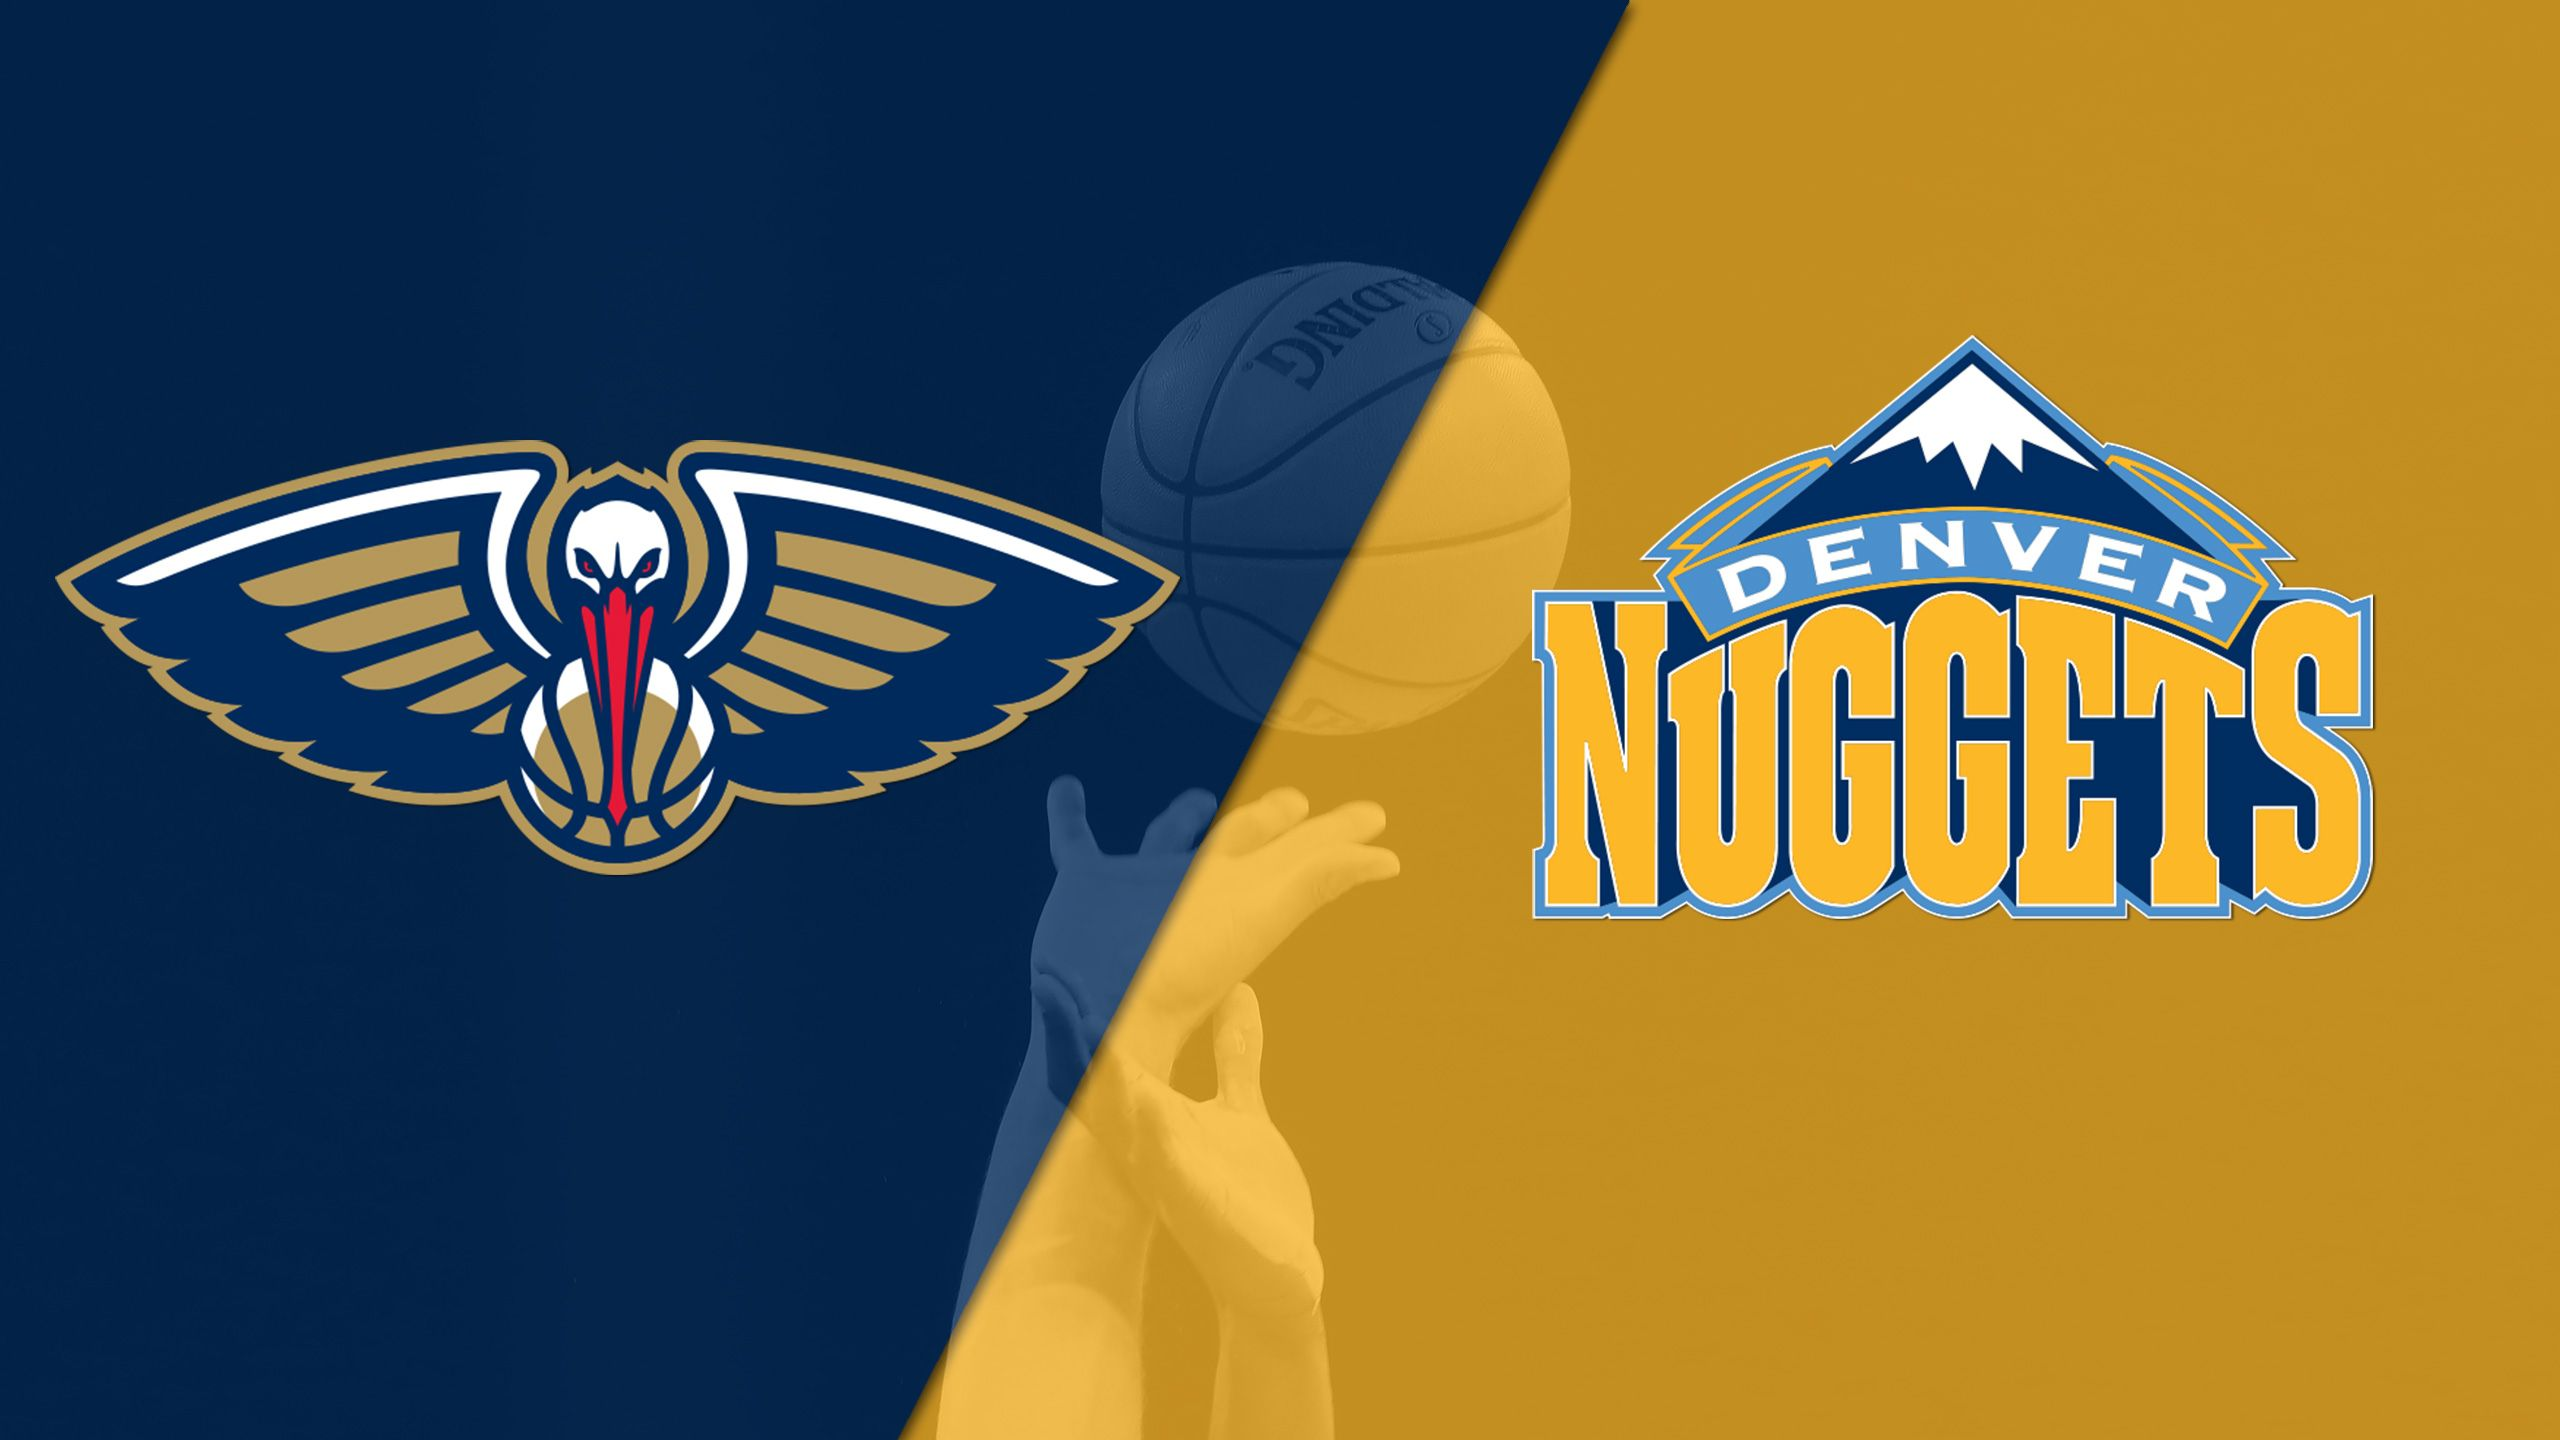 In Spanish - New Orleans Pelicans vs. Denver Nuggets